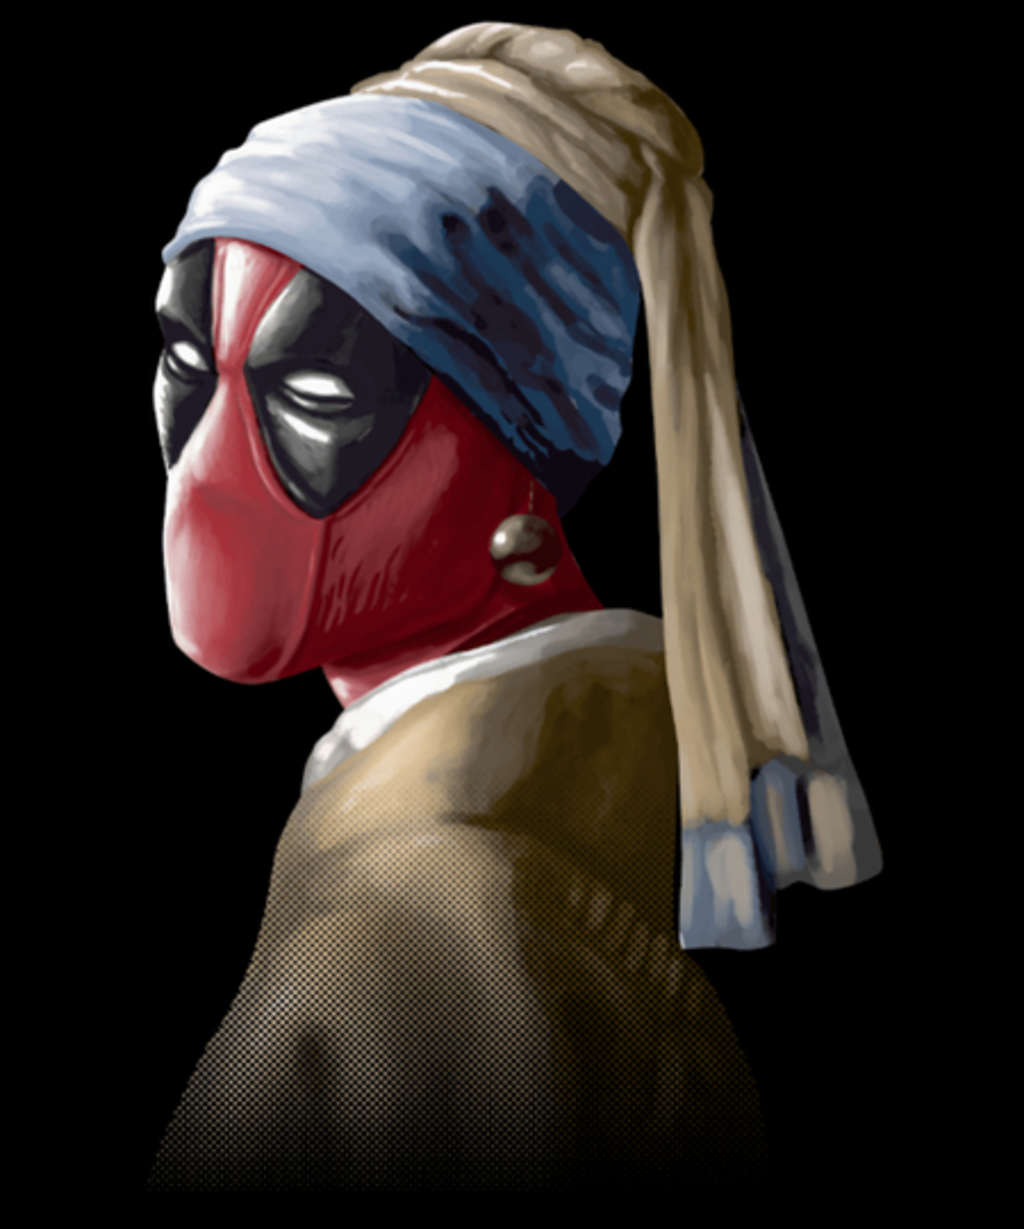 Qwertee: Hero with a pearl earring